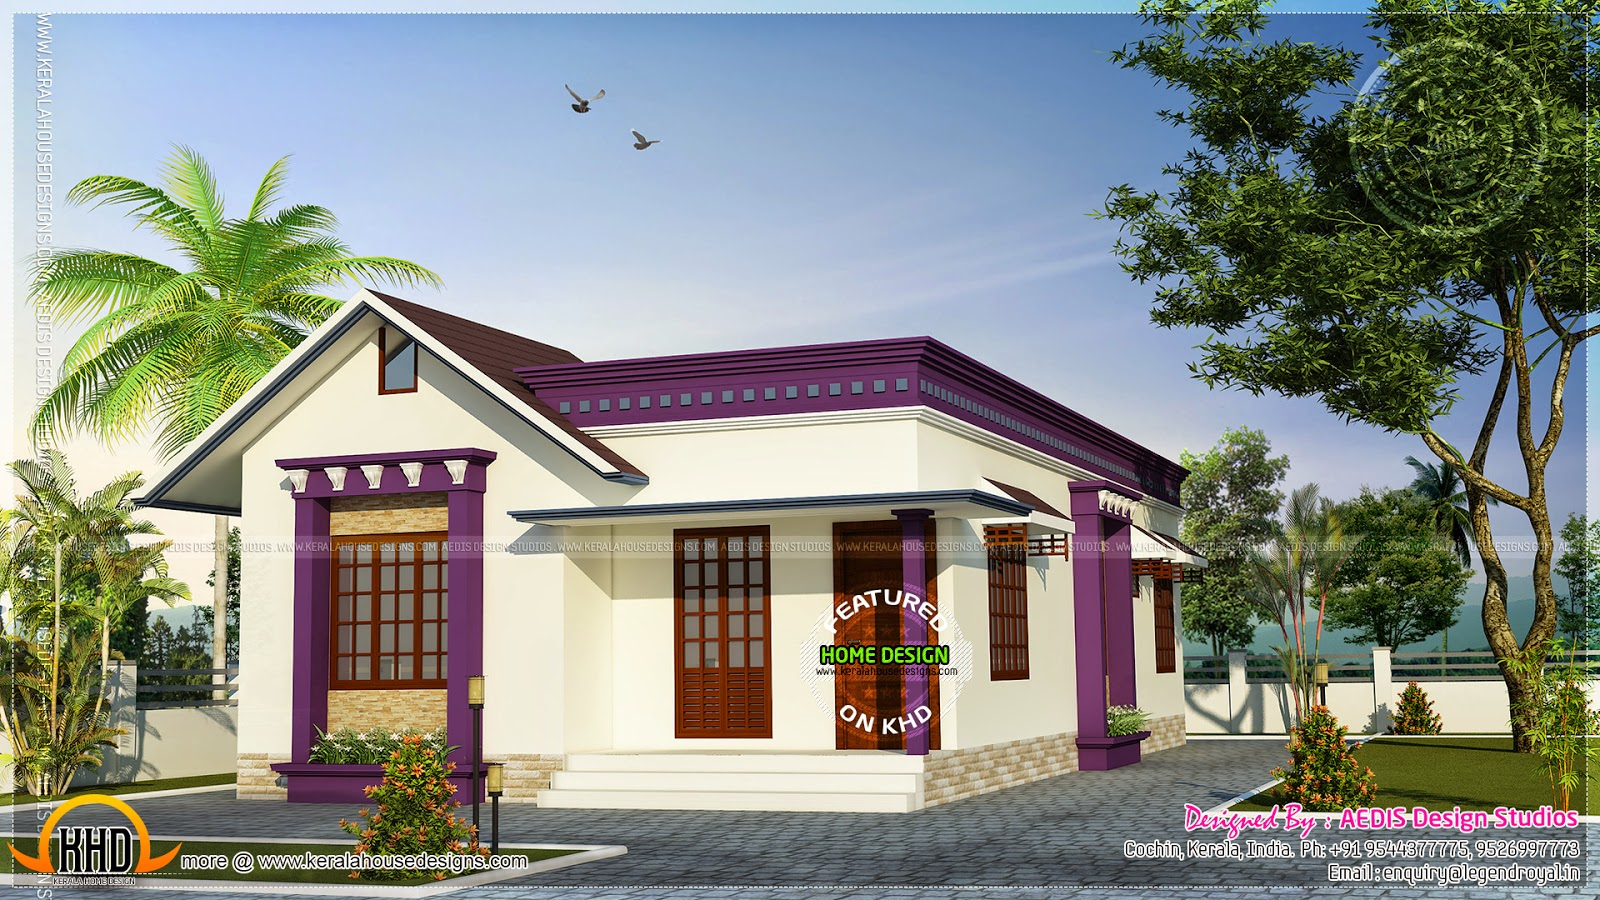 Roof Design Ideas: Kerala Home Design And Floor Plans